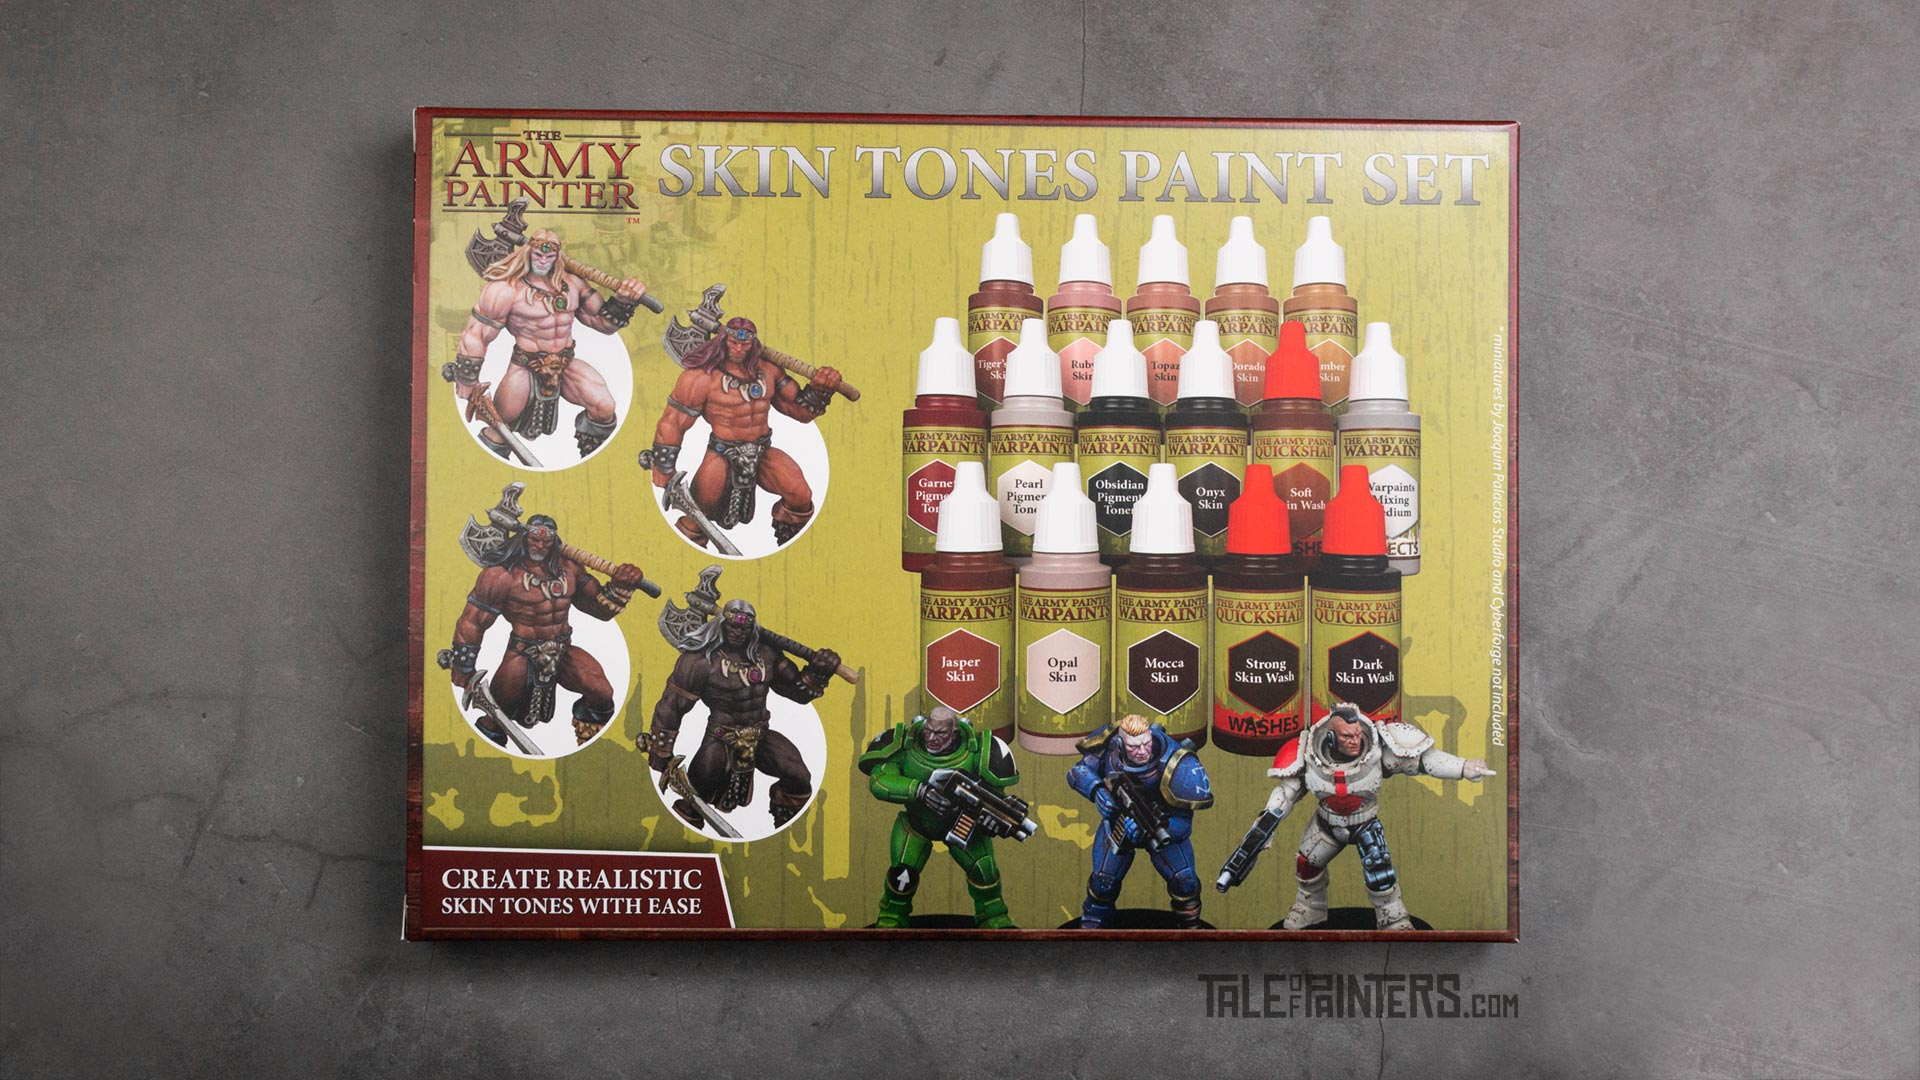 Review: The Army Painter Skin Tones paint set